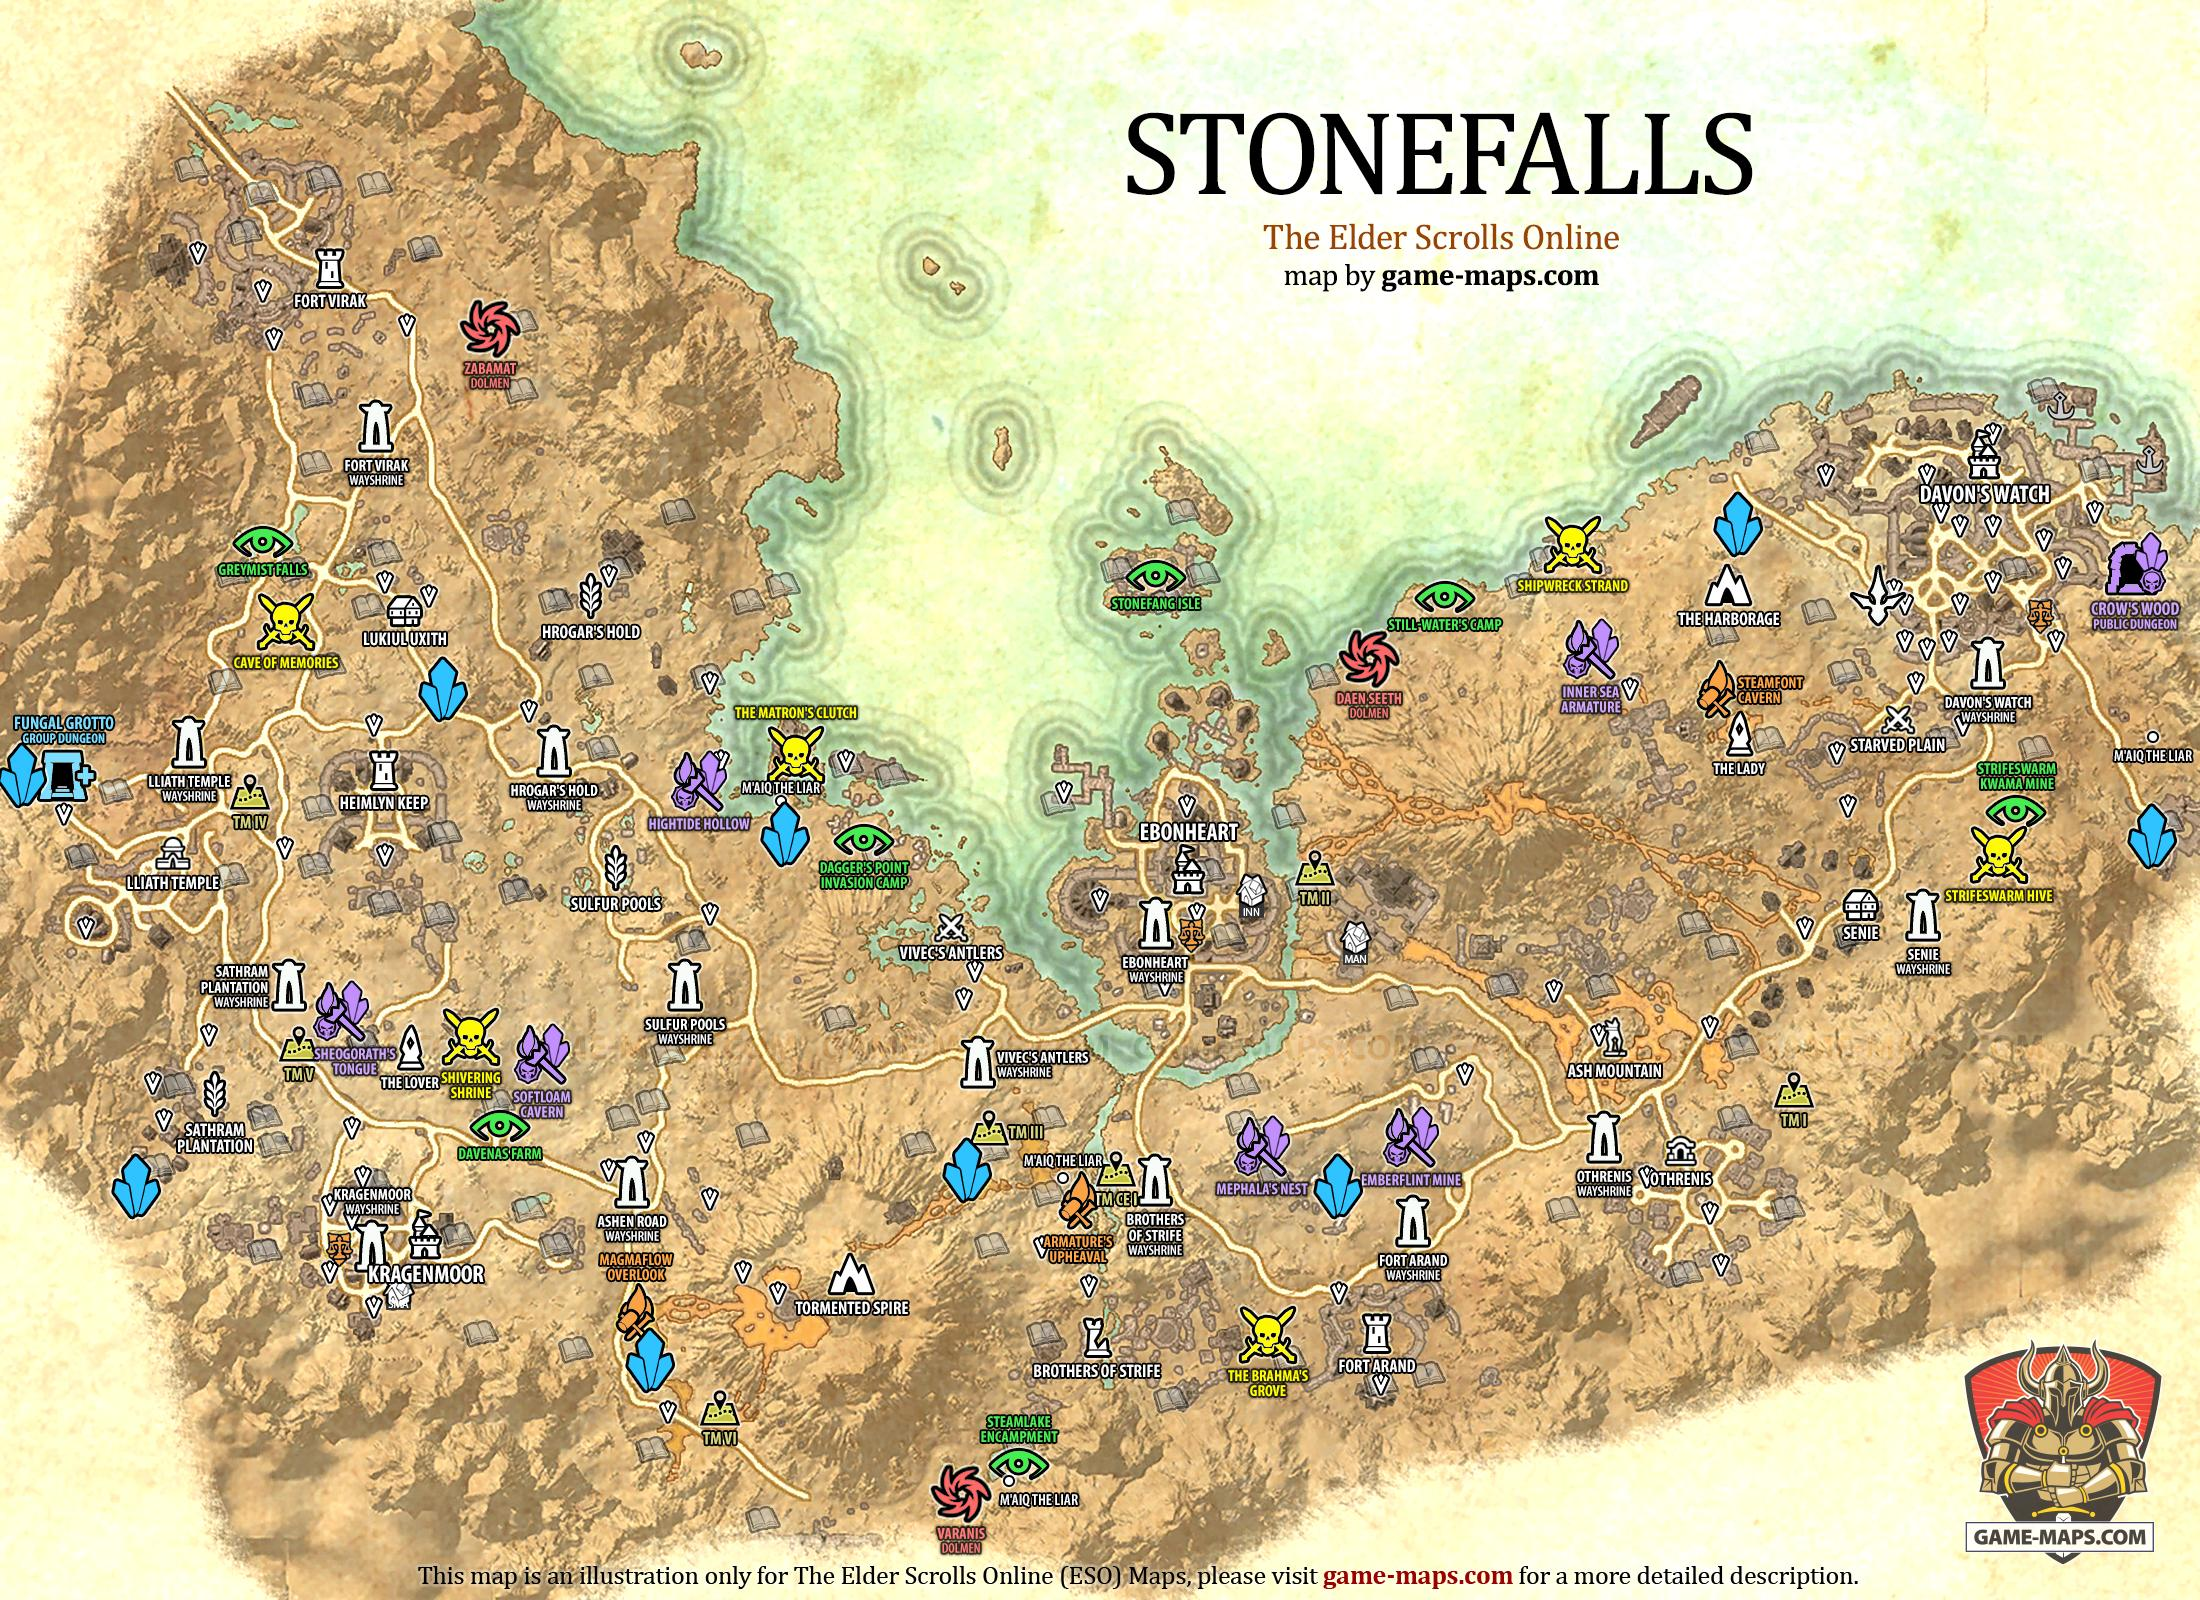 Stonefalls map the elder scrolls online game maps stonefalls zone map ebonheart davons watch the elder scrolls online eso maps guides walkthroughs gumiabroncs Choice Image